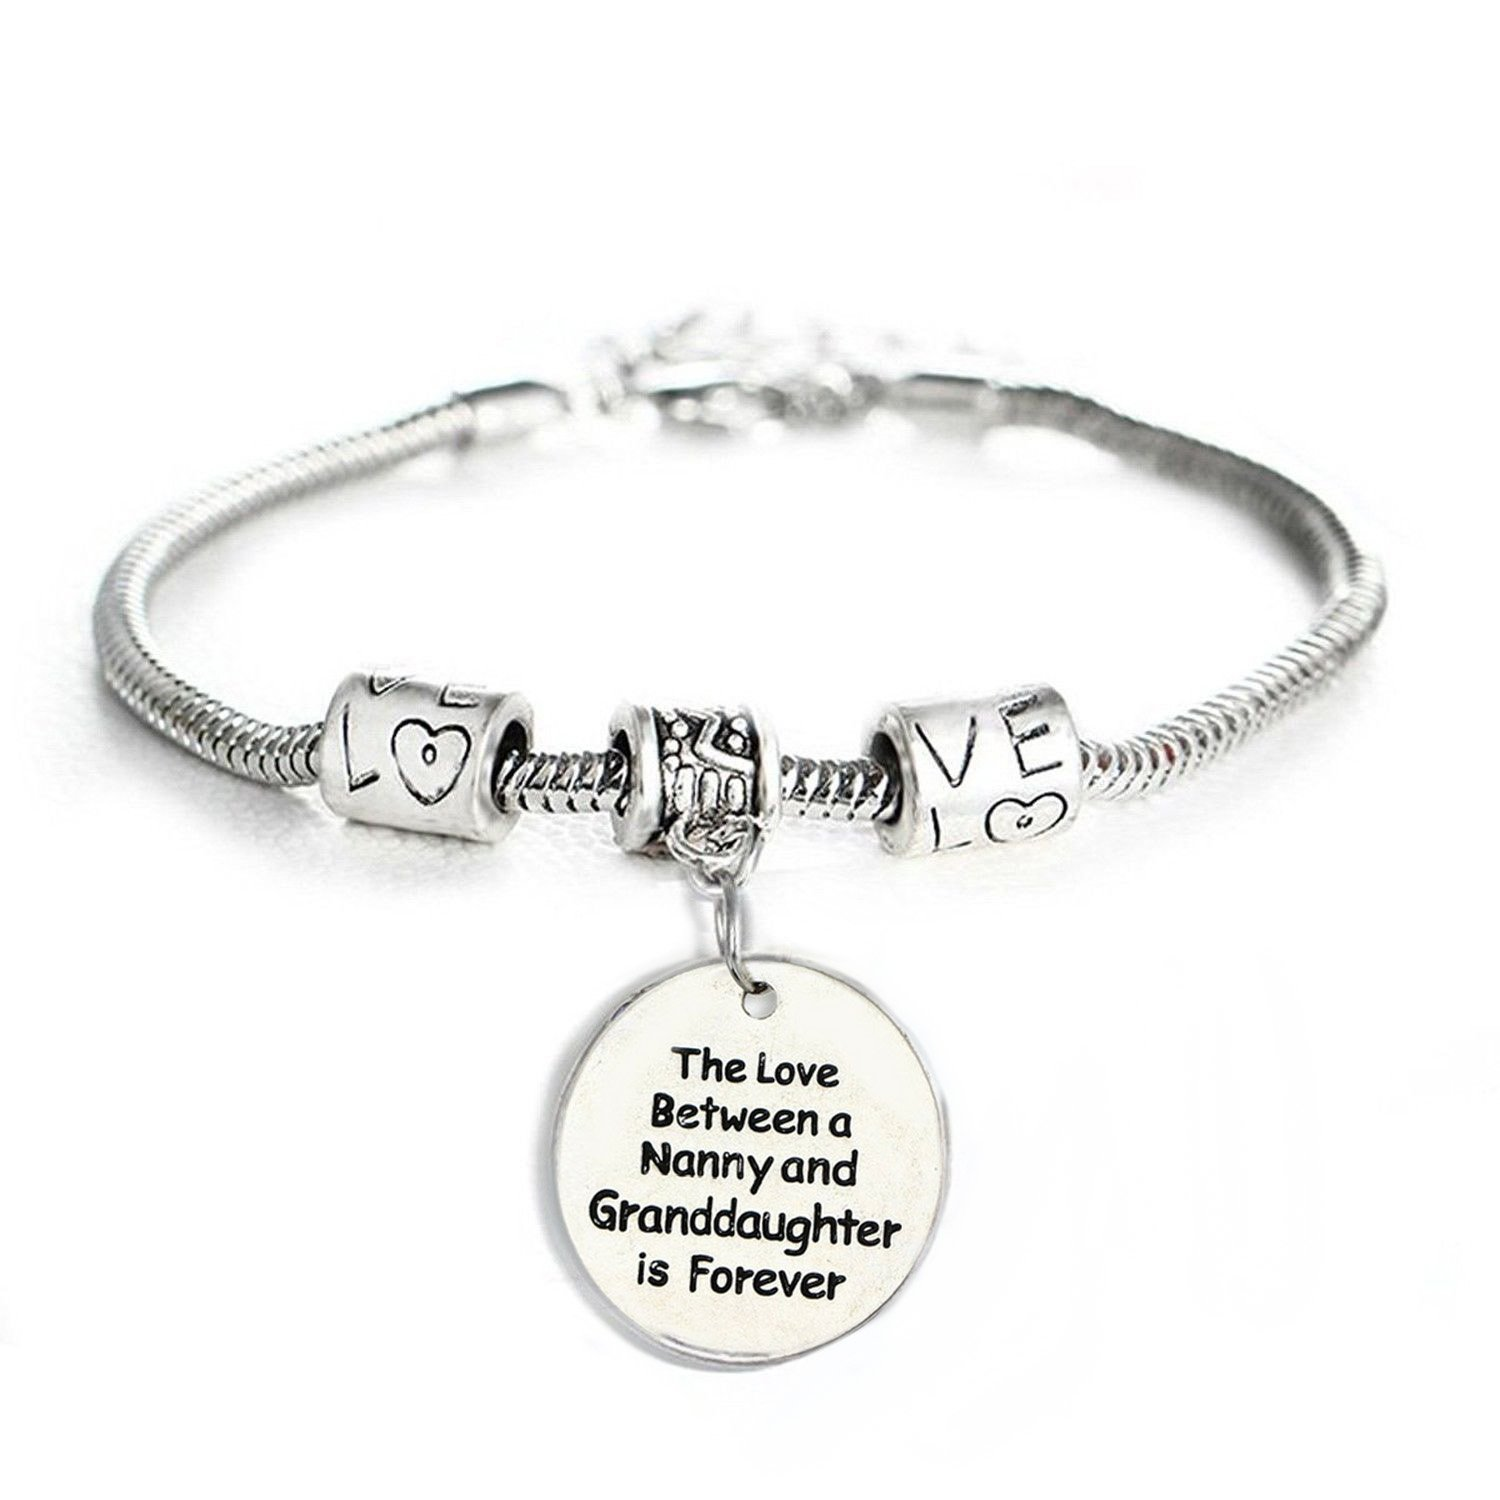 Love Between a Nanny and Granddaughter is Forever Bracelet - Personalized Jewelry Gift - 10'' Bracelet